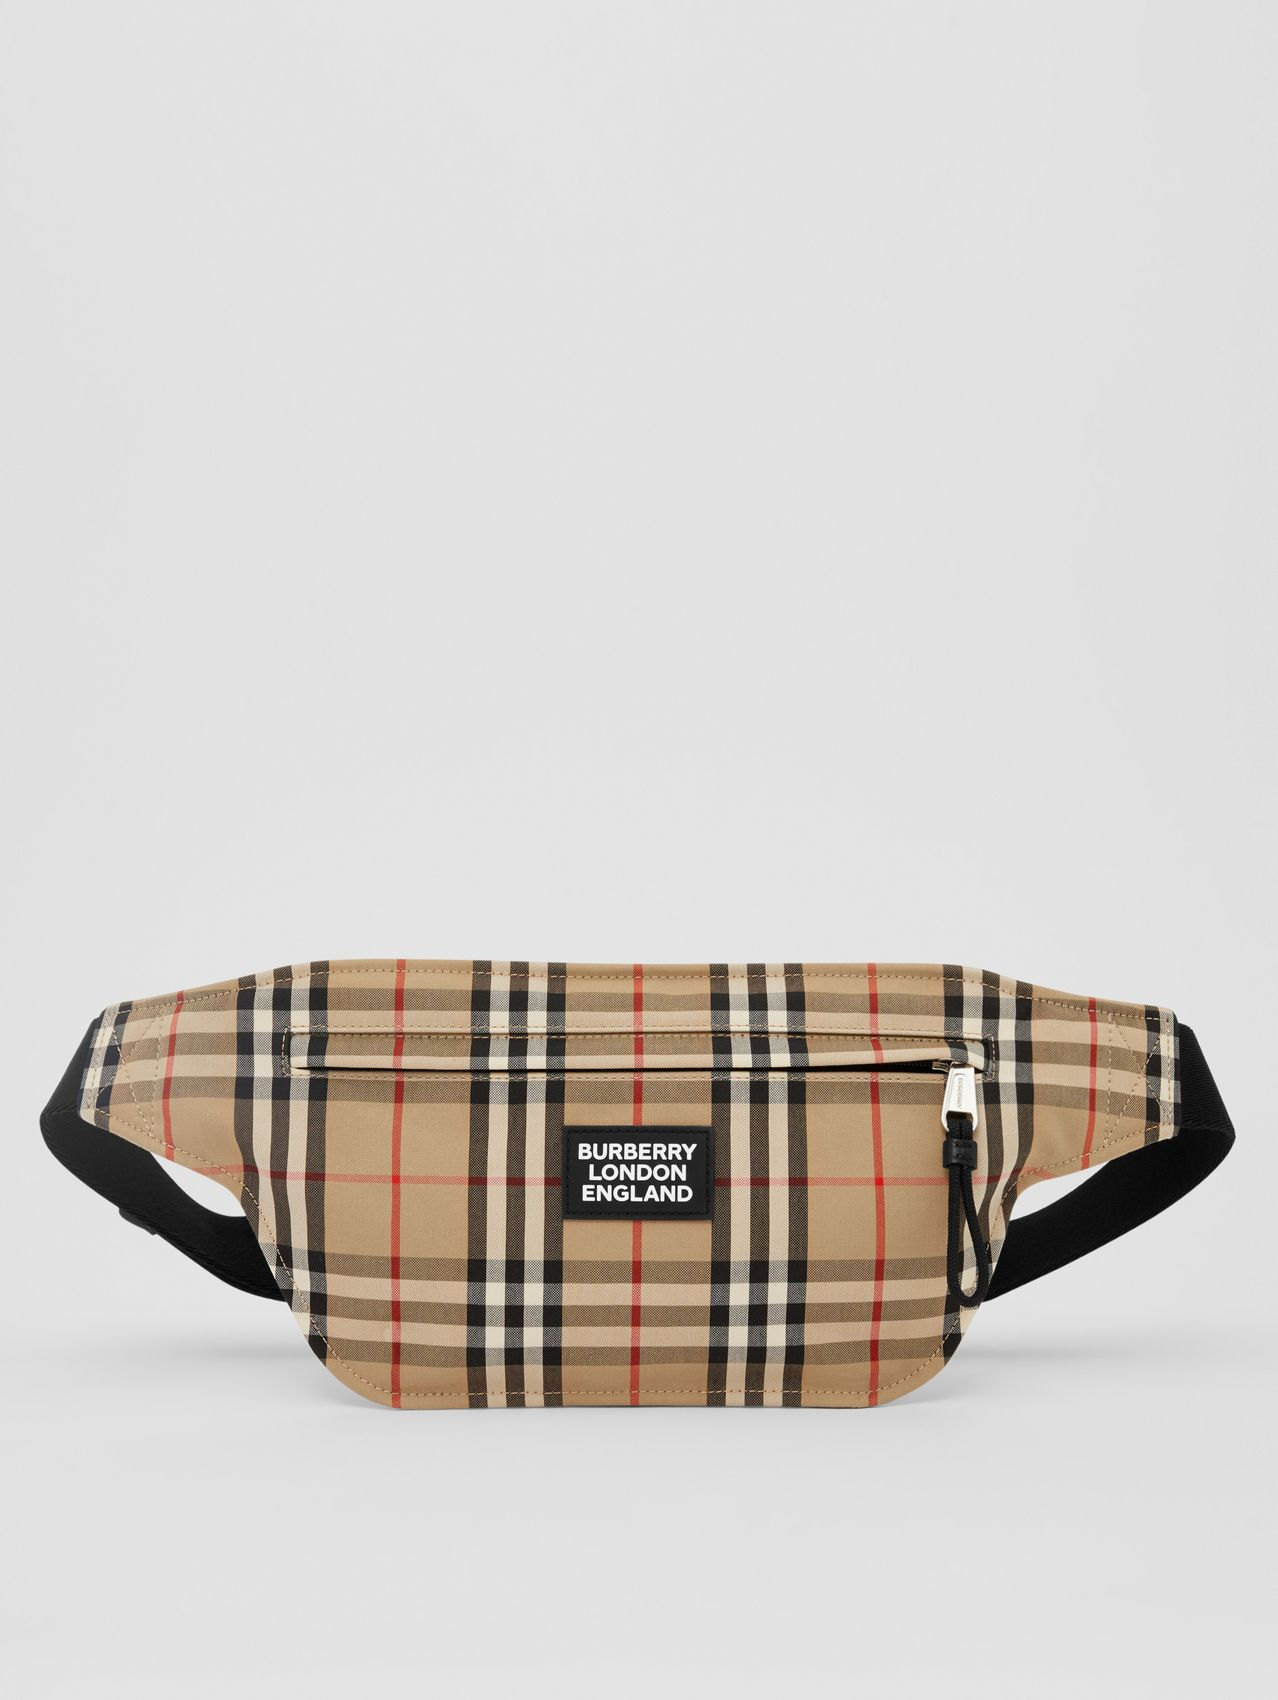 Logo Appliqué Vintage Check Brummell Bum Bag (Archive Beige)